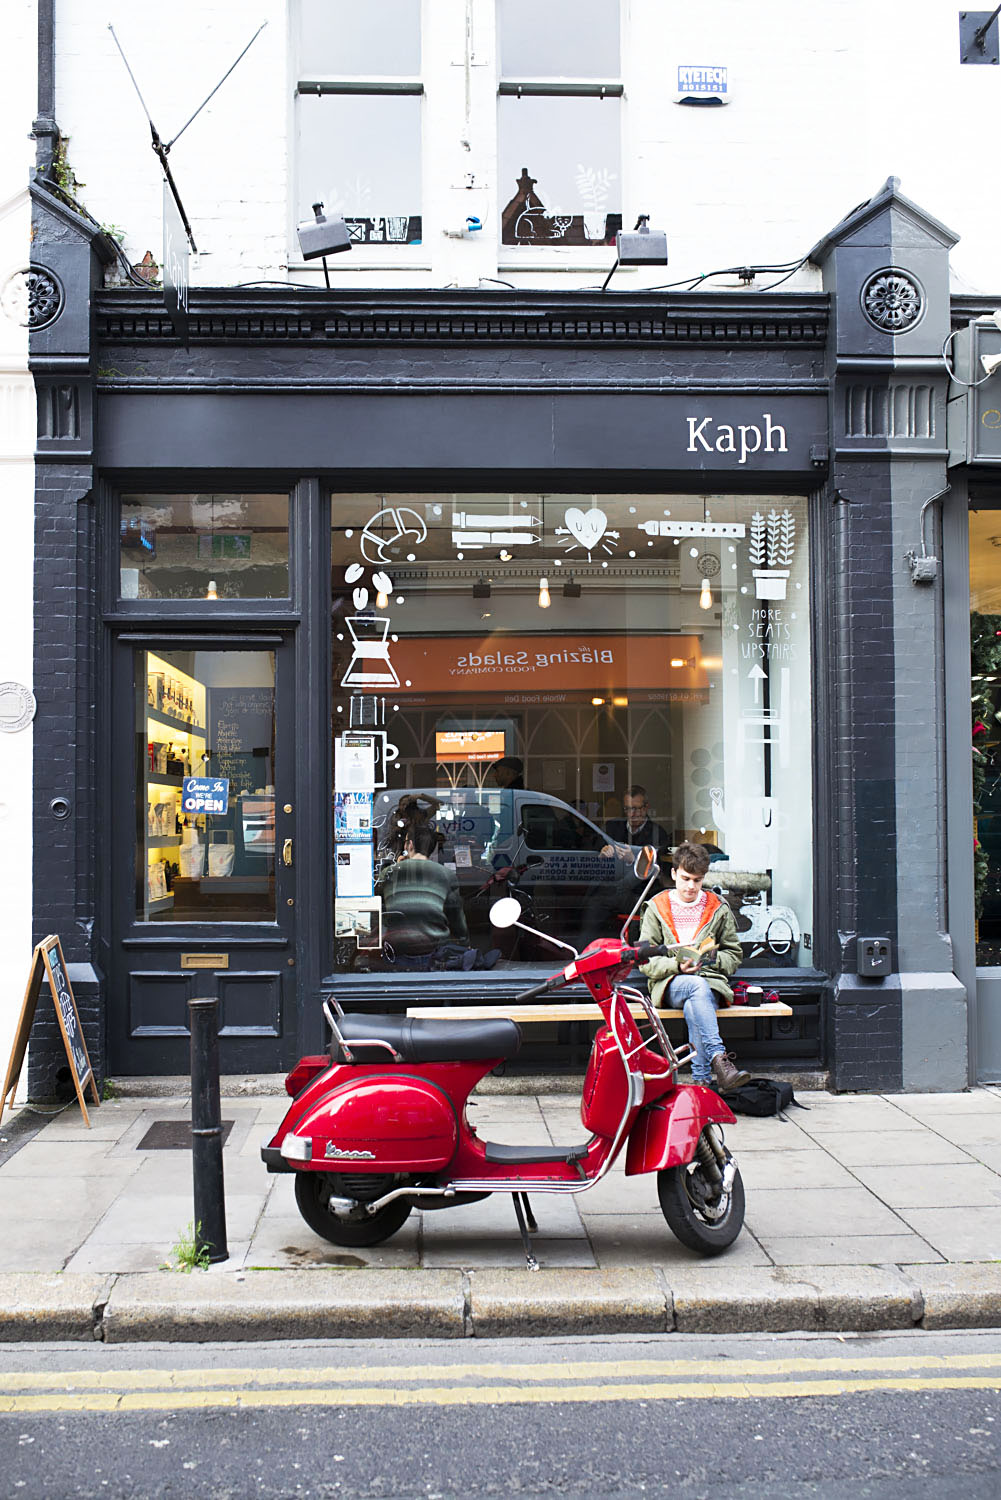 Kaph coffee shop in Dublin